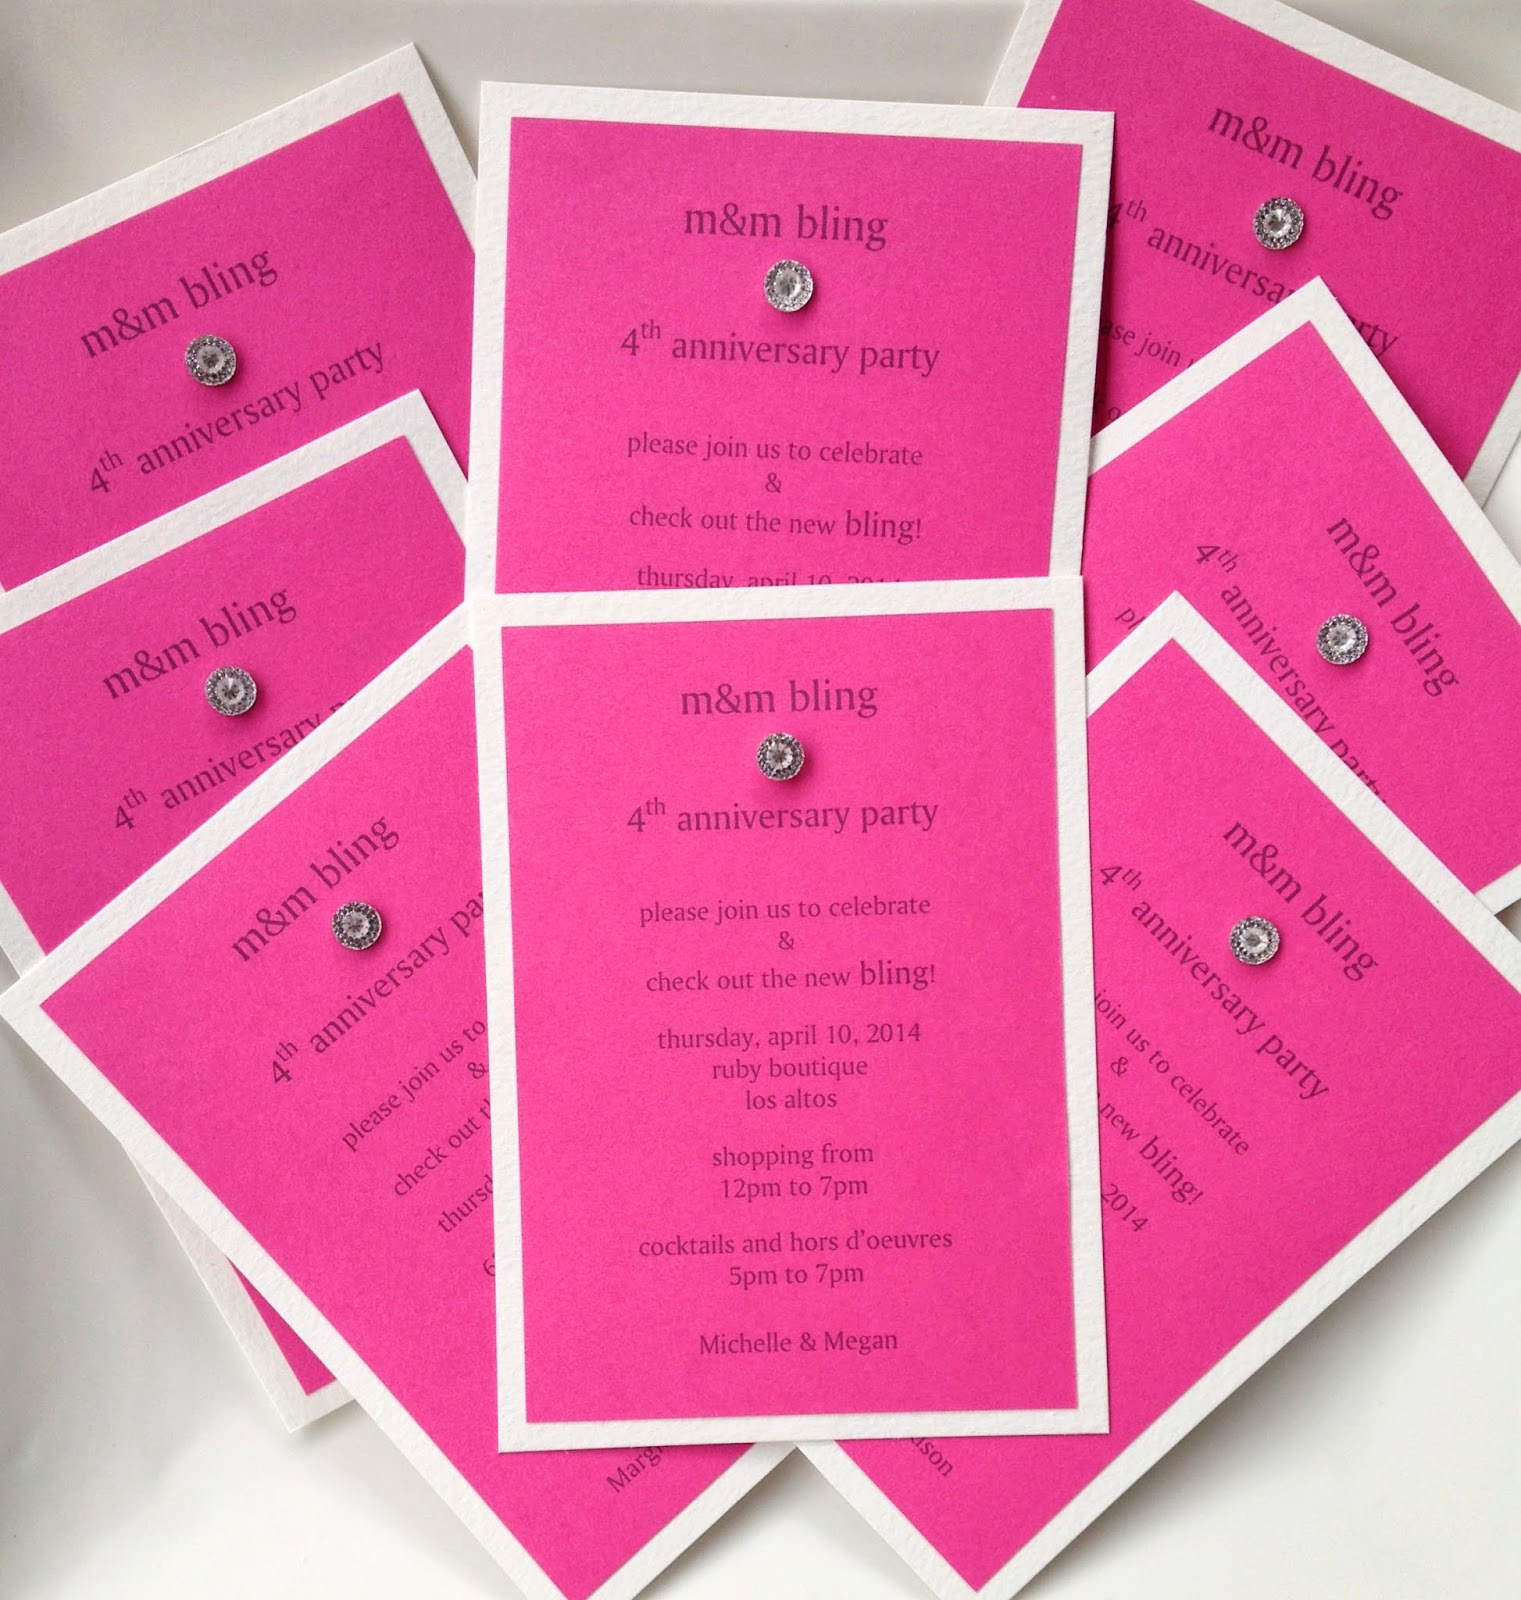 Jewelry Party Invitation Template Best Of Jac O Lyn Murphy This Invitation is A Gem Jewelry Party